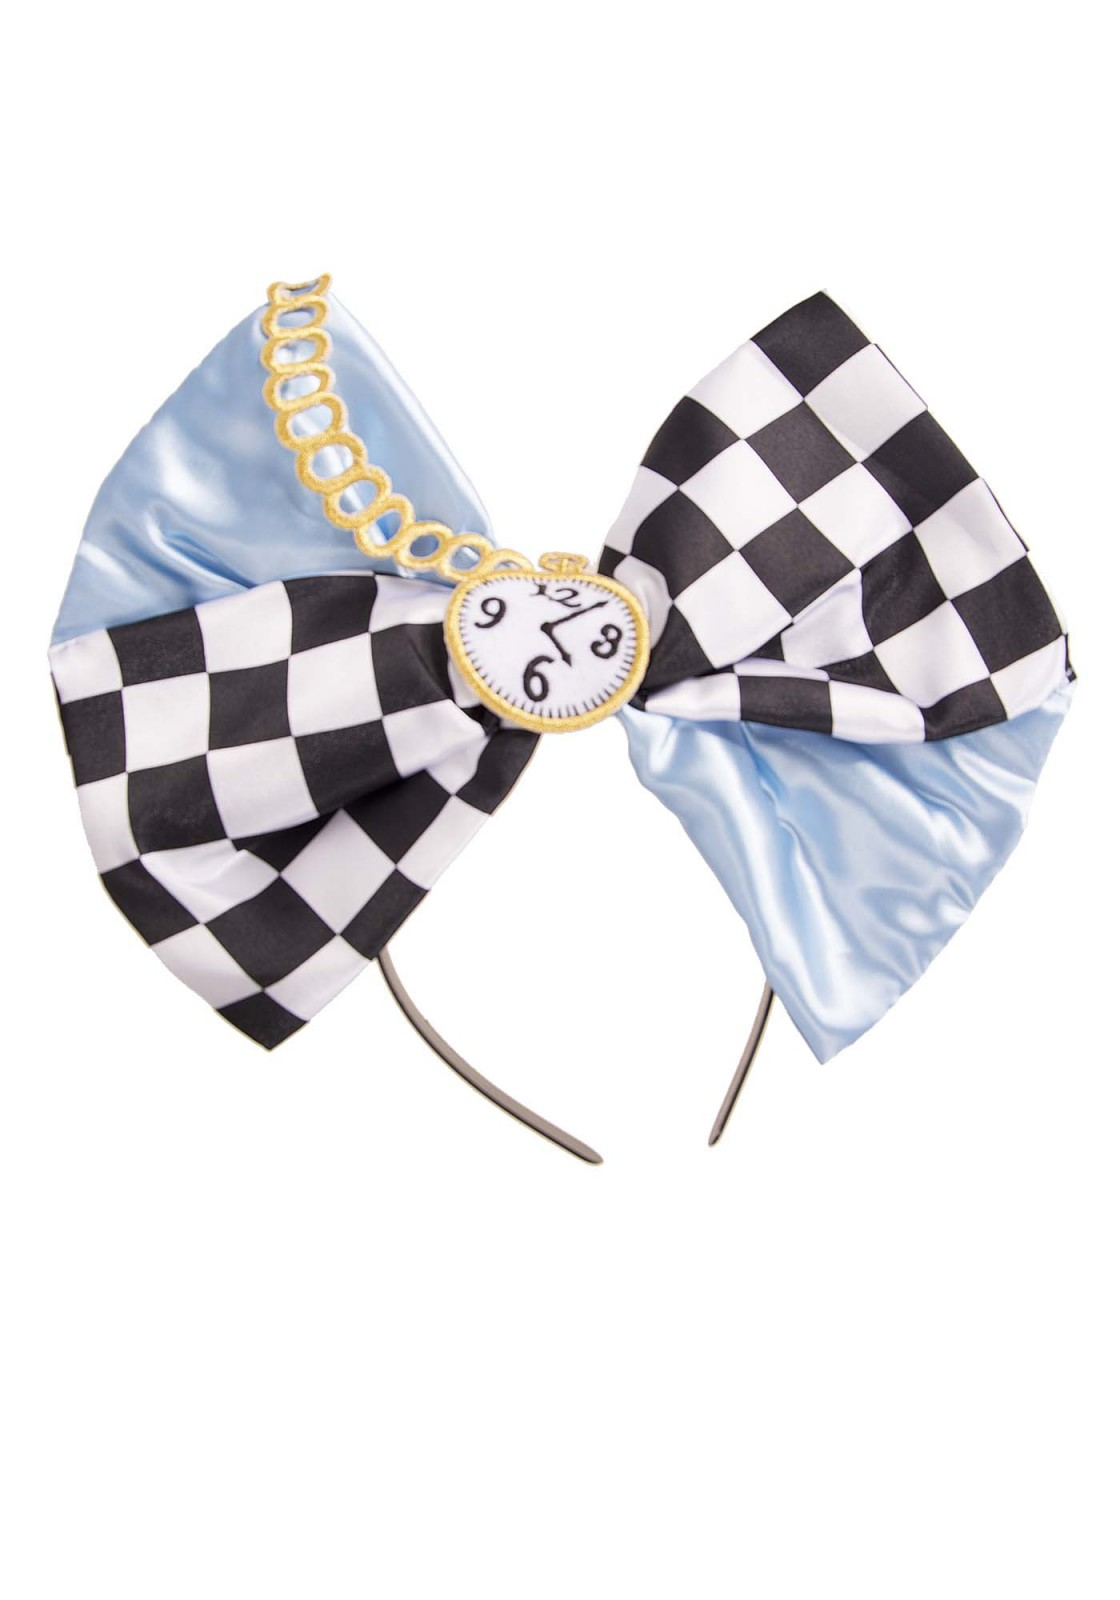 This oversized bow is well known from the Alice fairy-tale. The bow has an embroidered clock detail, and can be worn in different ways. It can be word as a headband but the bow can also be pinned on clothing with a safety pin. The bow includes a headband and safety pin.